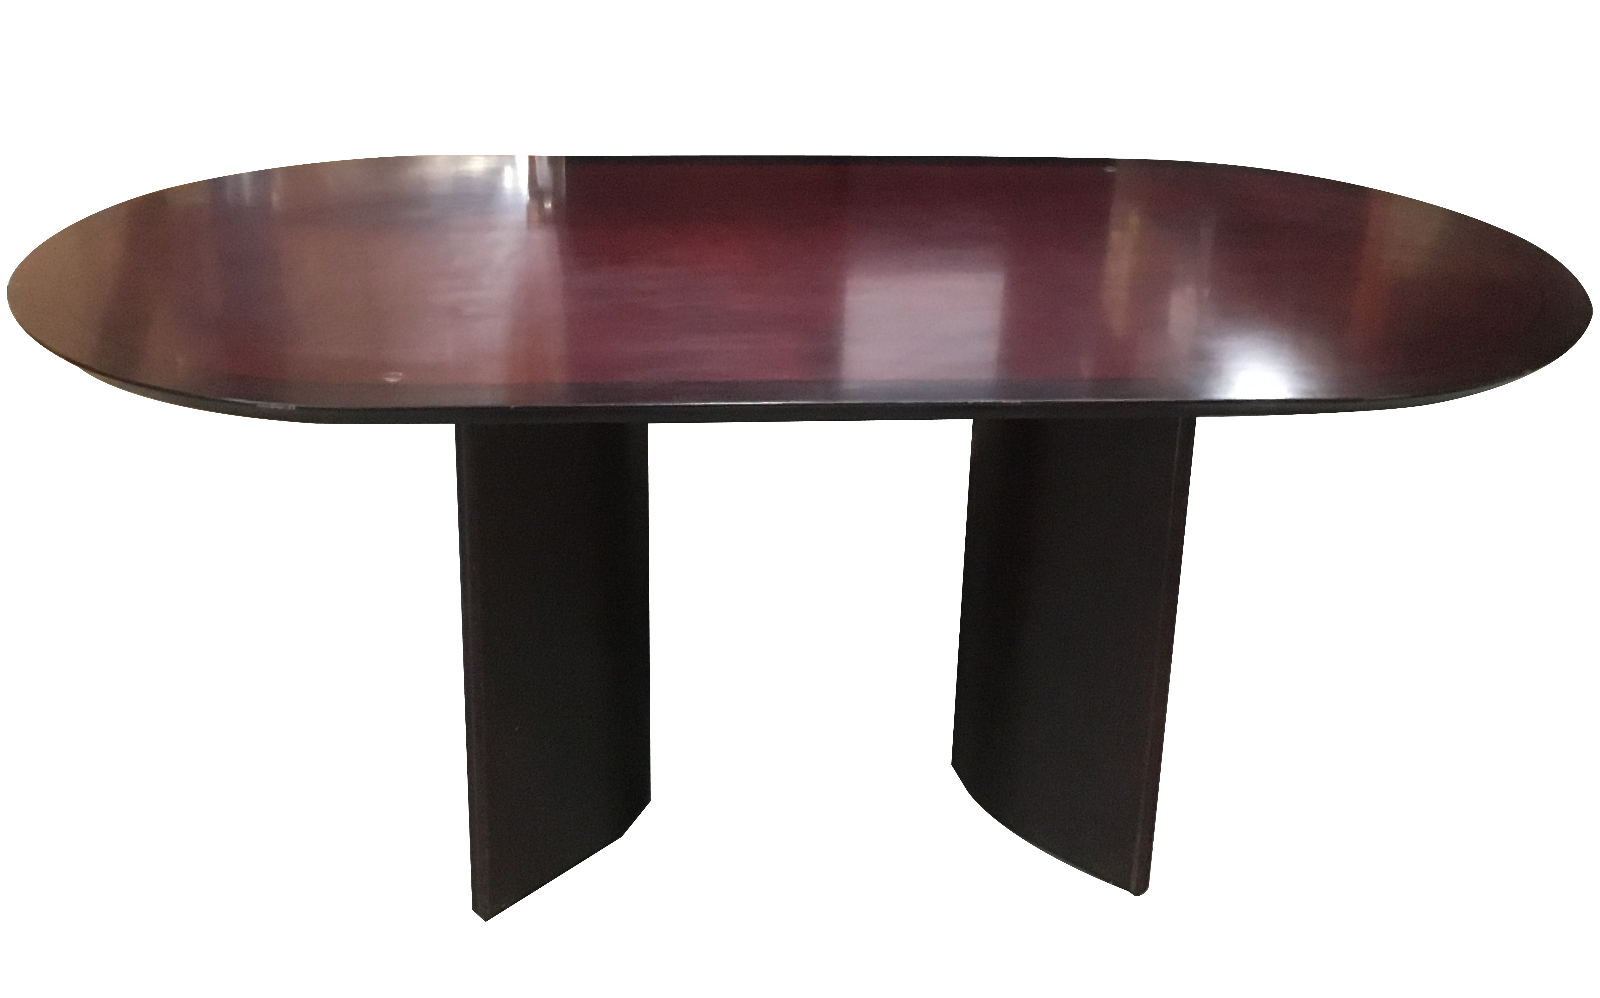 OVAL CONFERENCE TABLE WITH BASE